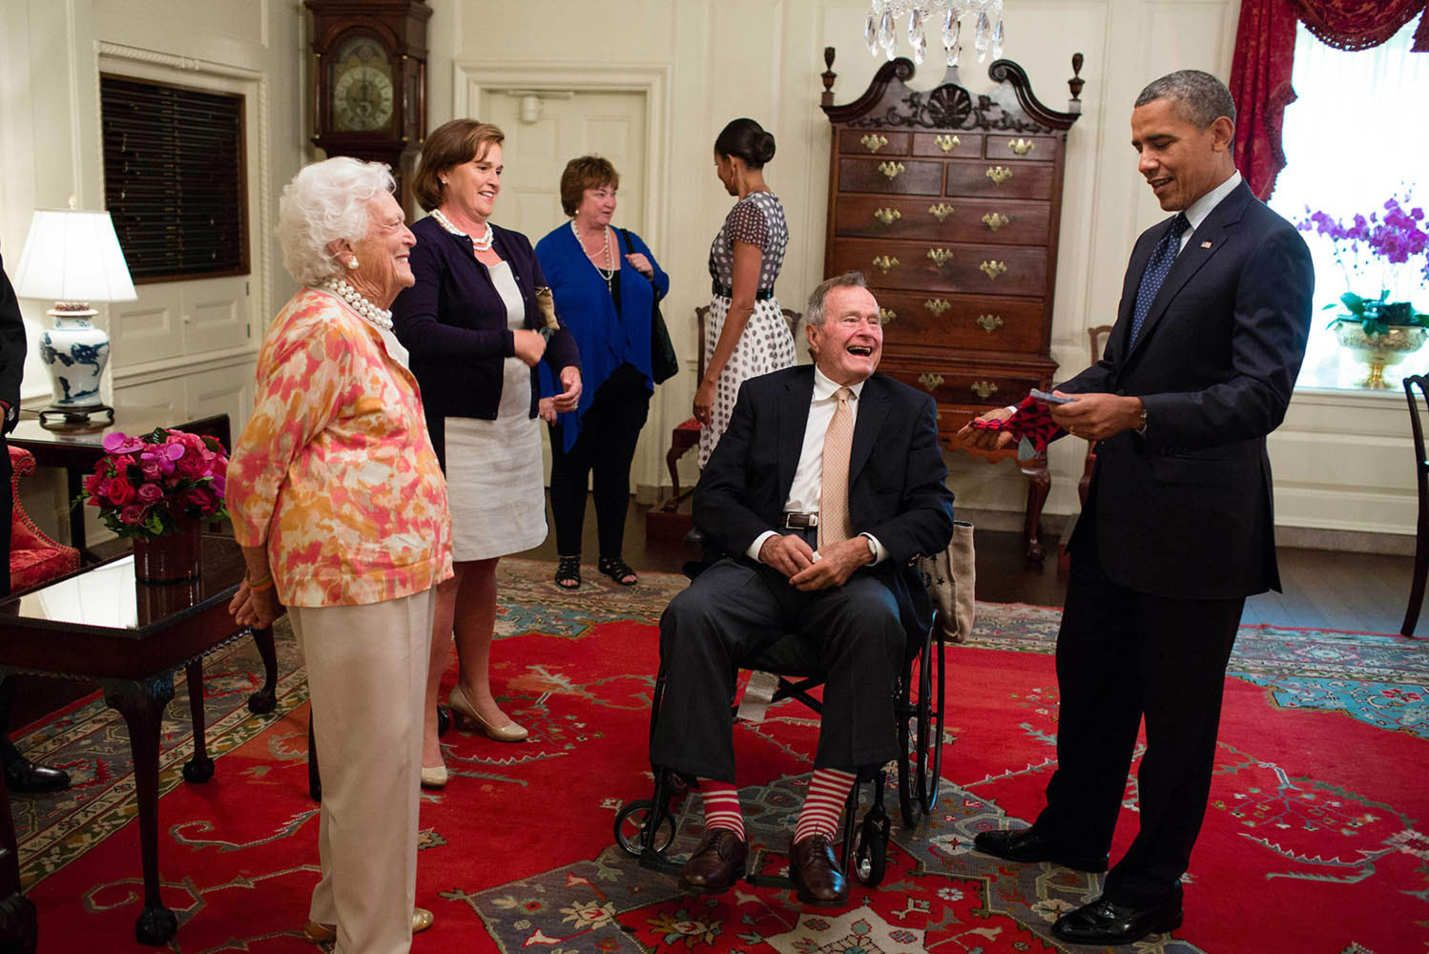 Former President George H. W. Bush and former First Lady Barbara Bush presenting the president with a pair of socks in the Map Room of the White House.